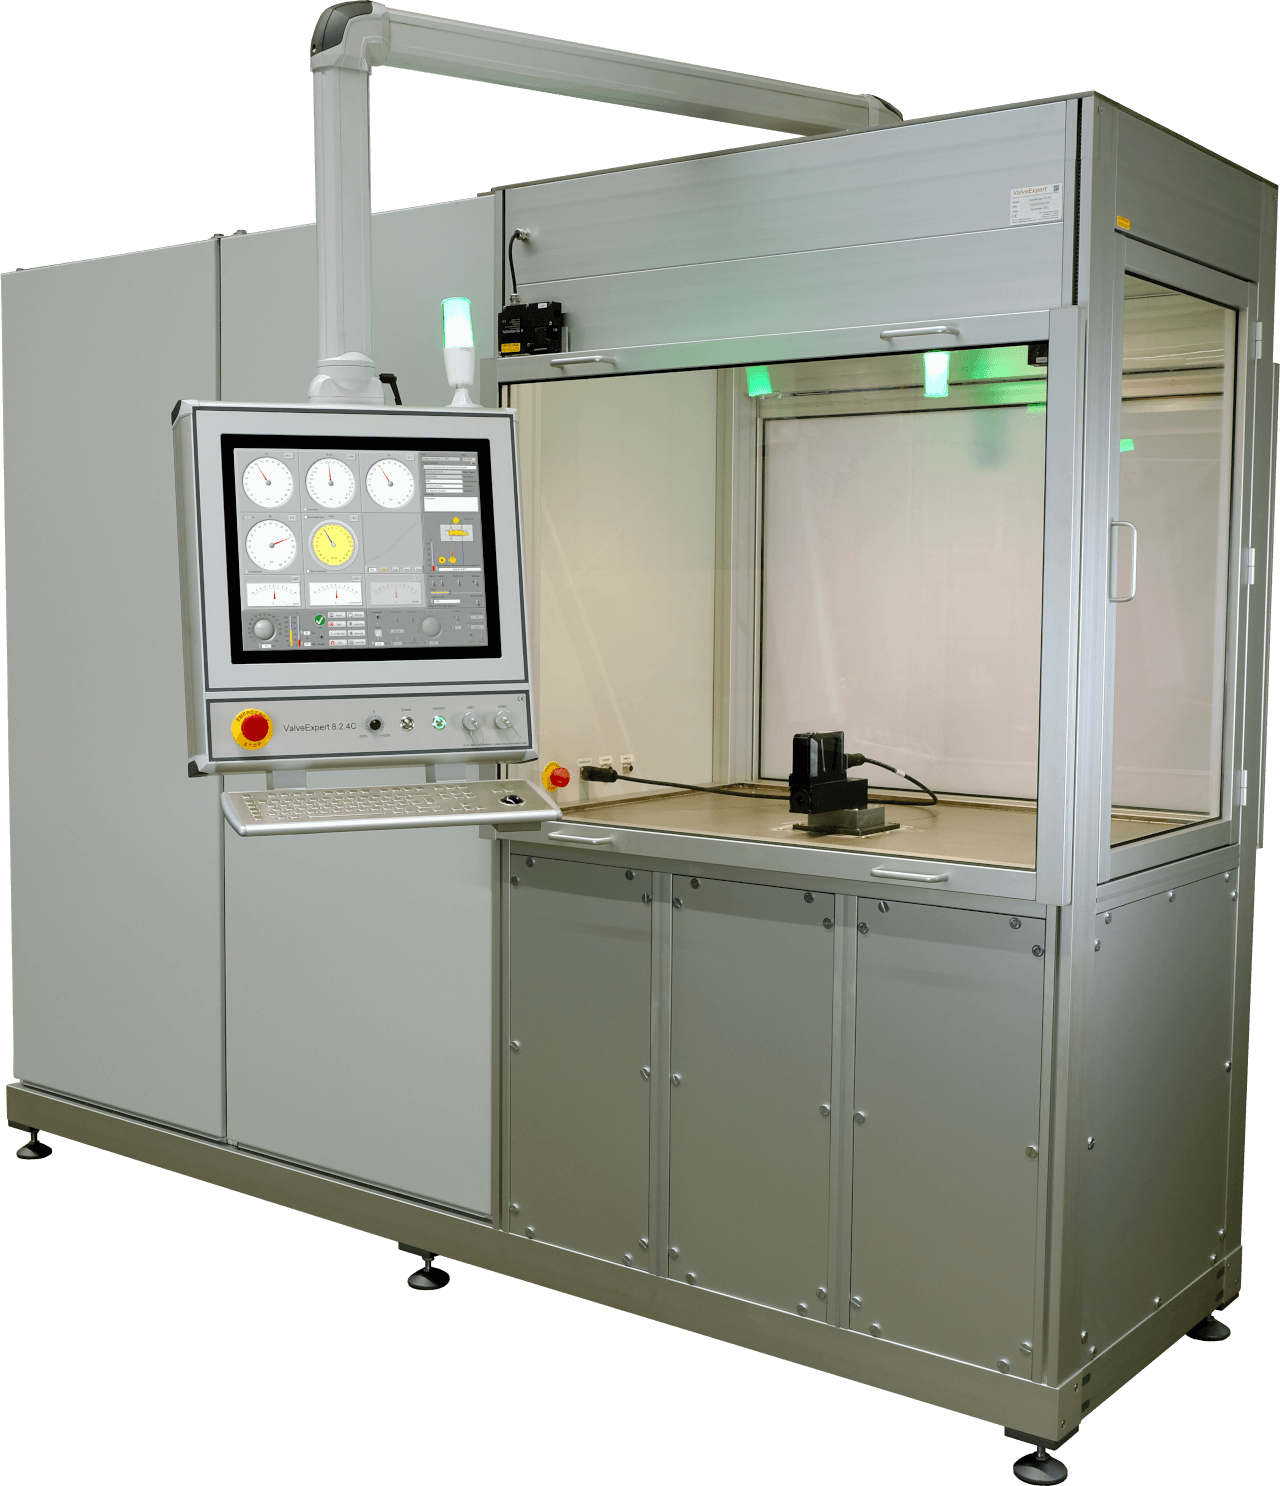 ValveExpert 8.2.4C - Test bench for hydraulic servo- and proportional valves